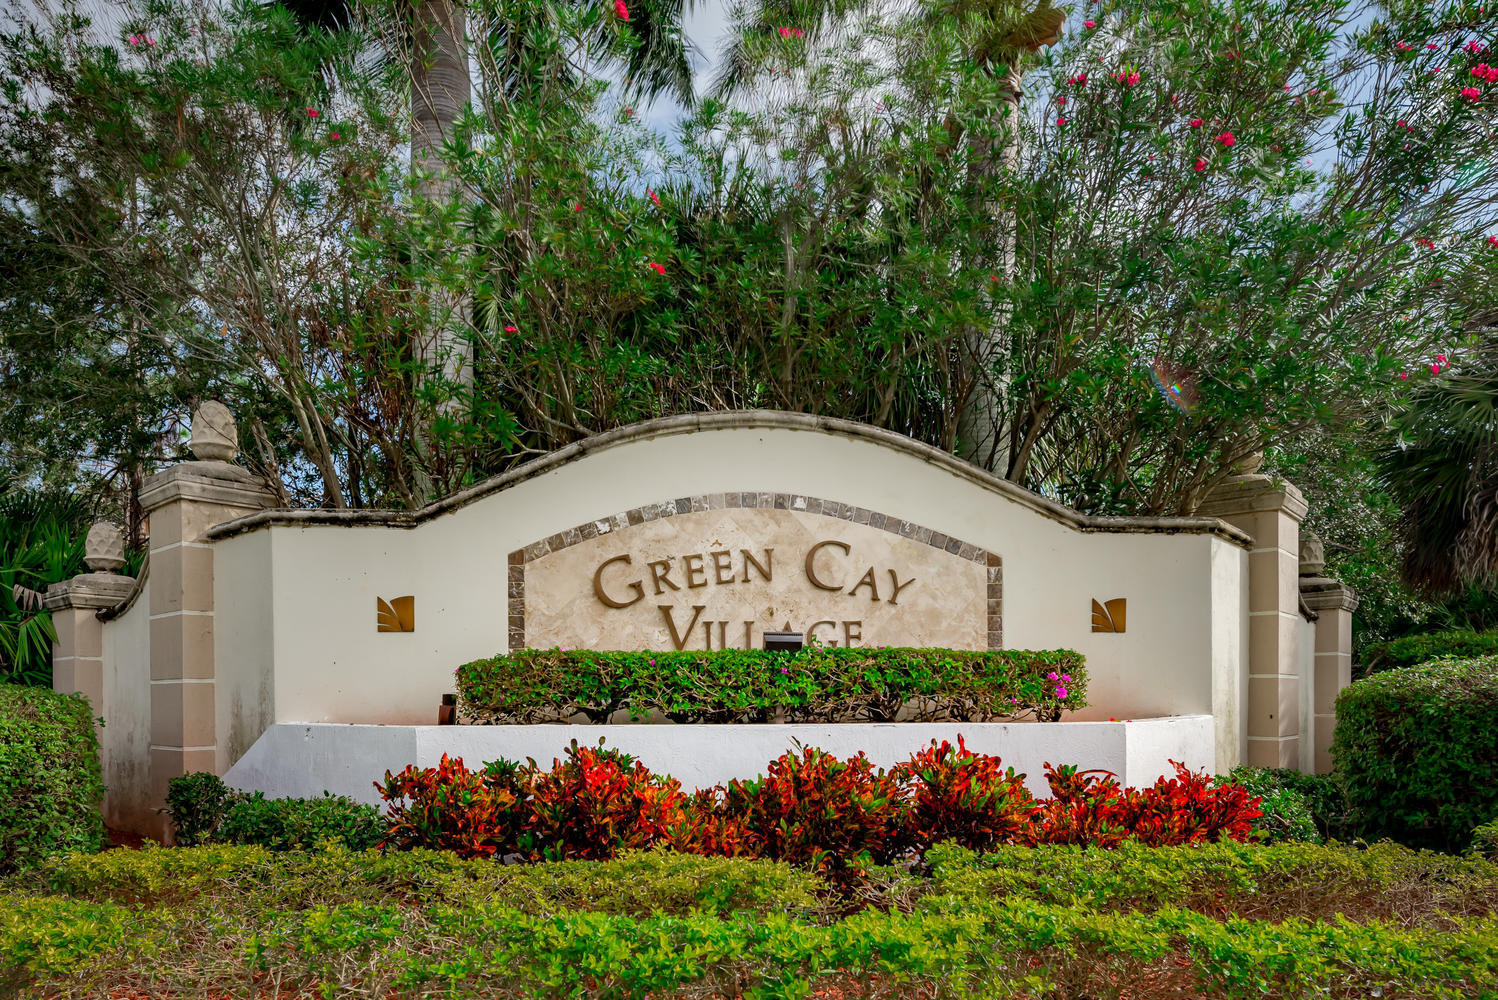 RARELY AVAILABLE 3 BEDROOM 2 BATHROOM CONDO IN THE LOVELY GATED COMMUNITY OF GREEN CAY VILLAGE. NEW AC INSTALLED INSIDE AND OUT AND NEW FULL SIZE WASHER/DRYER IN 2017. ALL NEW STAINLESS STEEL APPLIANCES IN 2018. BEAUTIFUL GRANITE KITCHEN. THIS UNIT HAS NO CARPET! TILE FLOORS THROUGHOUT. COMPLETE IMPACT GLASS. UNIT ALSO HAS THE NEST SYSTEM. ONE ORIGINAL OWNER WHO KEPT THIS HOME IN EXCELLENT CONDITION! BASIC CABLE, WATER AND SEWER ARE INCLUDED IN THE MONTHLY MAINTENANCE. GREEN CAY WAS BUILT AS ENERGY EFFICIENT SO ENERGY BILLS ARE VERY REASONABLE! COMMUNITY FEATURES POOL, FITNESS CENTER AND TOT LOT! THIS IS PERFECT FOR INVESTORS AS WELL! NO RENTAL RESTRICTIONS, SUPER FAST APPROVAL PROCESS AND CAN BE RENTED RIGHT AWAY! THIS WILL NOT LAST!